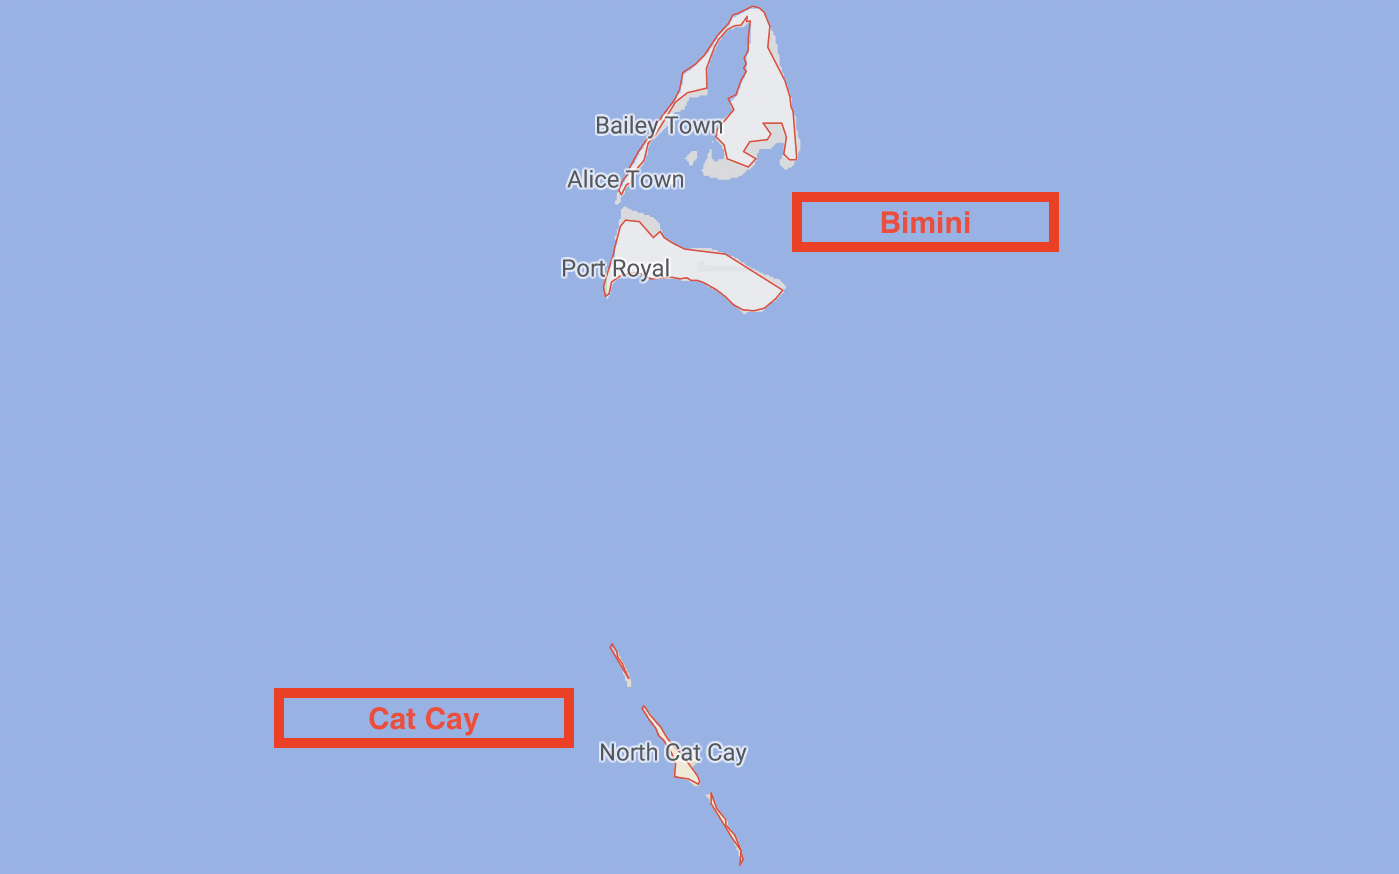 Map of Bimini and Cat Cay ports of entry